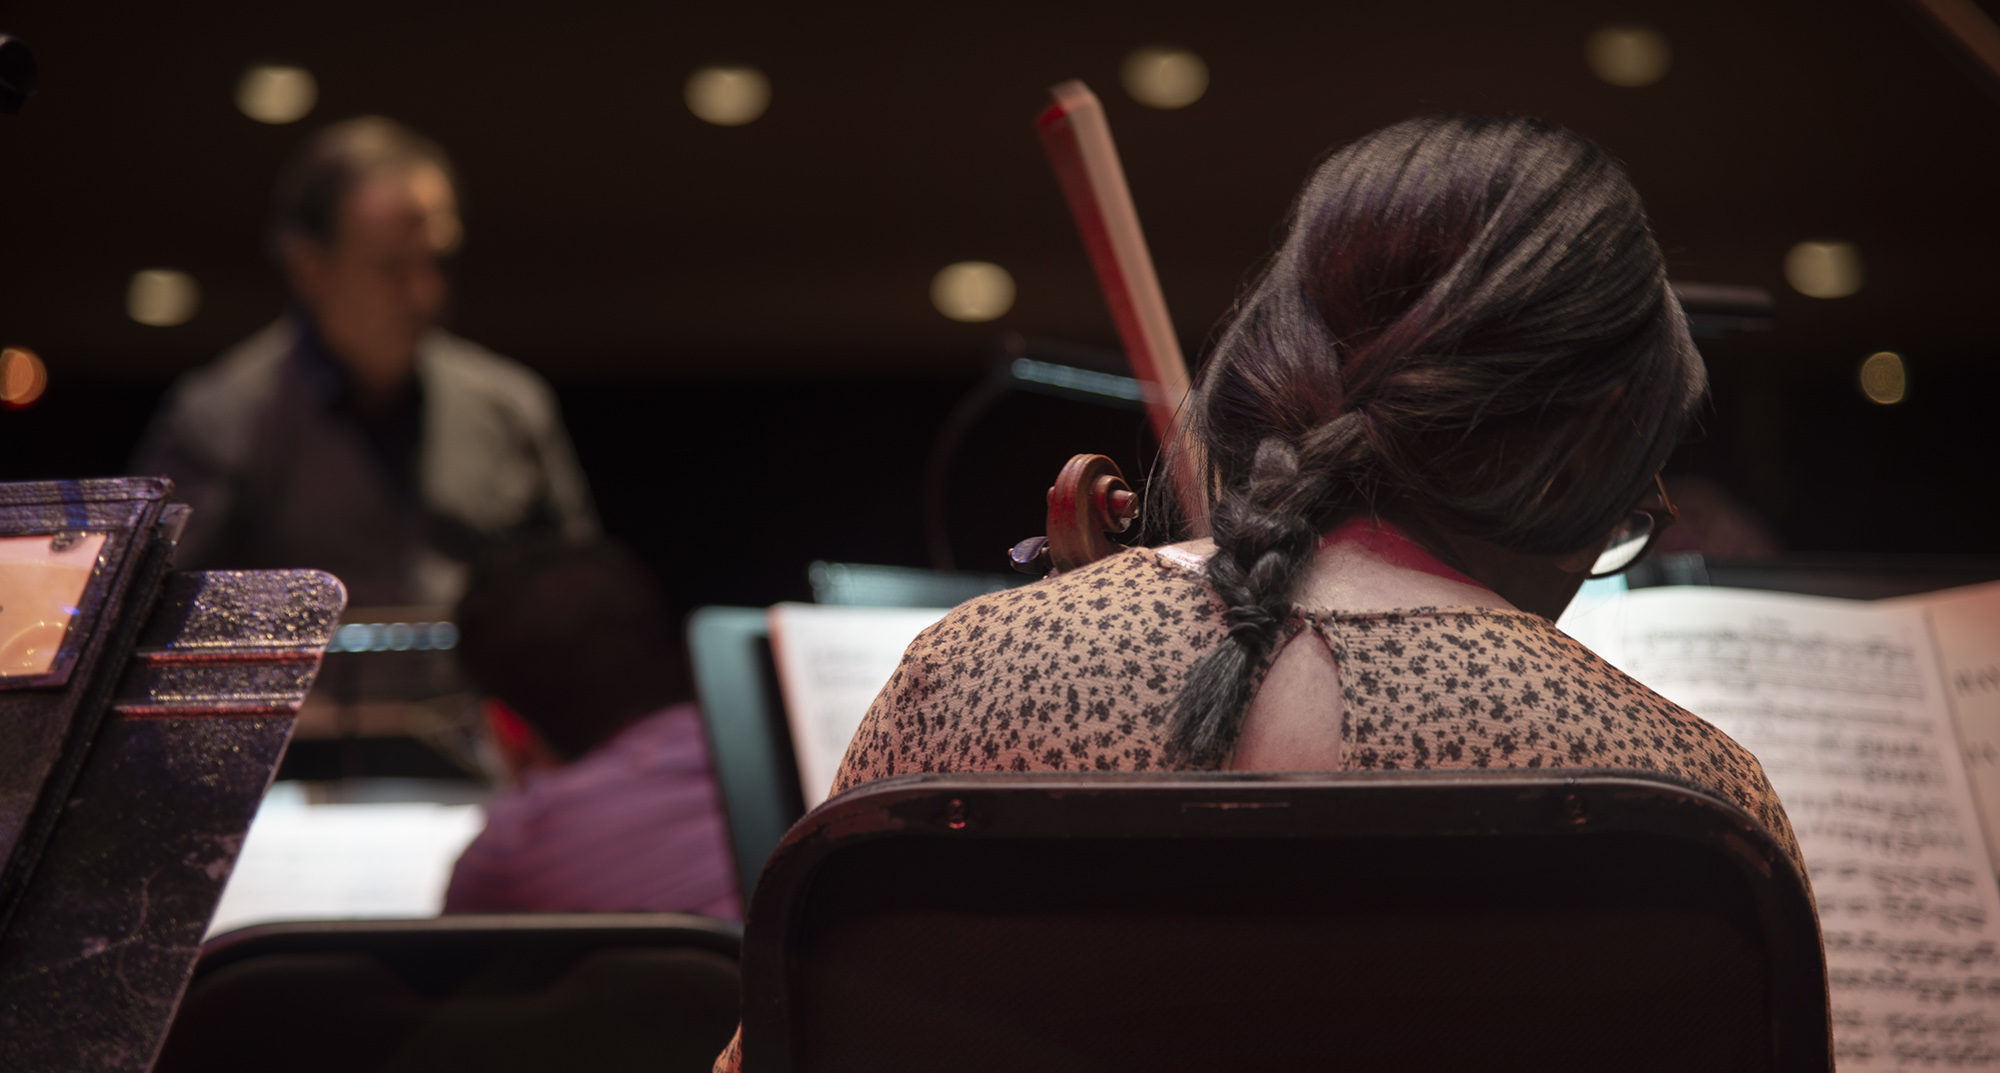 A violin player prepares for the long practice ahead. At the time, the orchestra was practicing for the Casals Festival, a classical music festival held every year in Puerto Rico. Photo by Erin McLoughlin